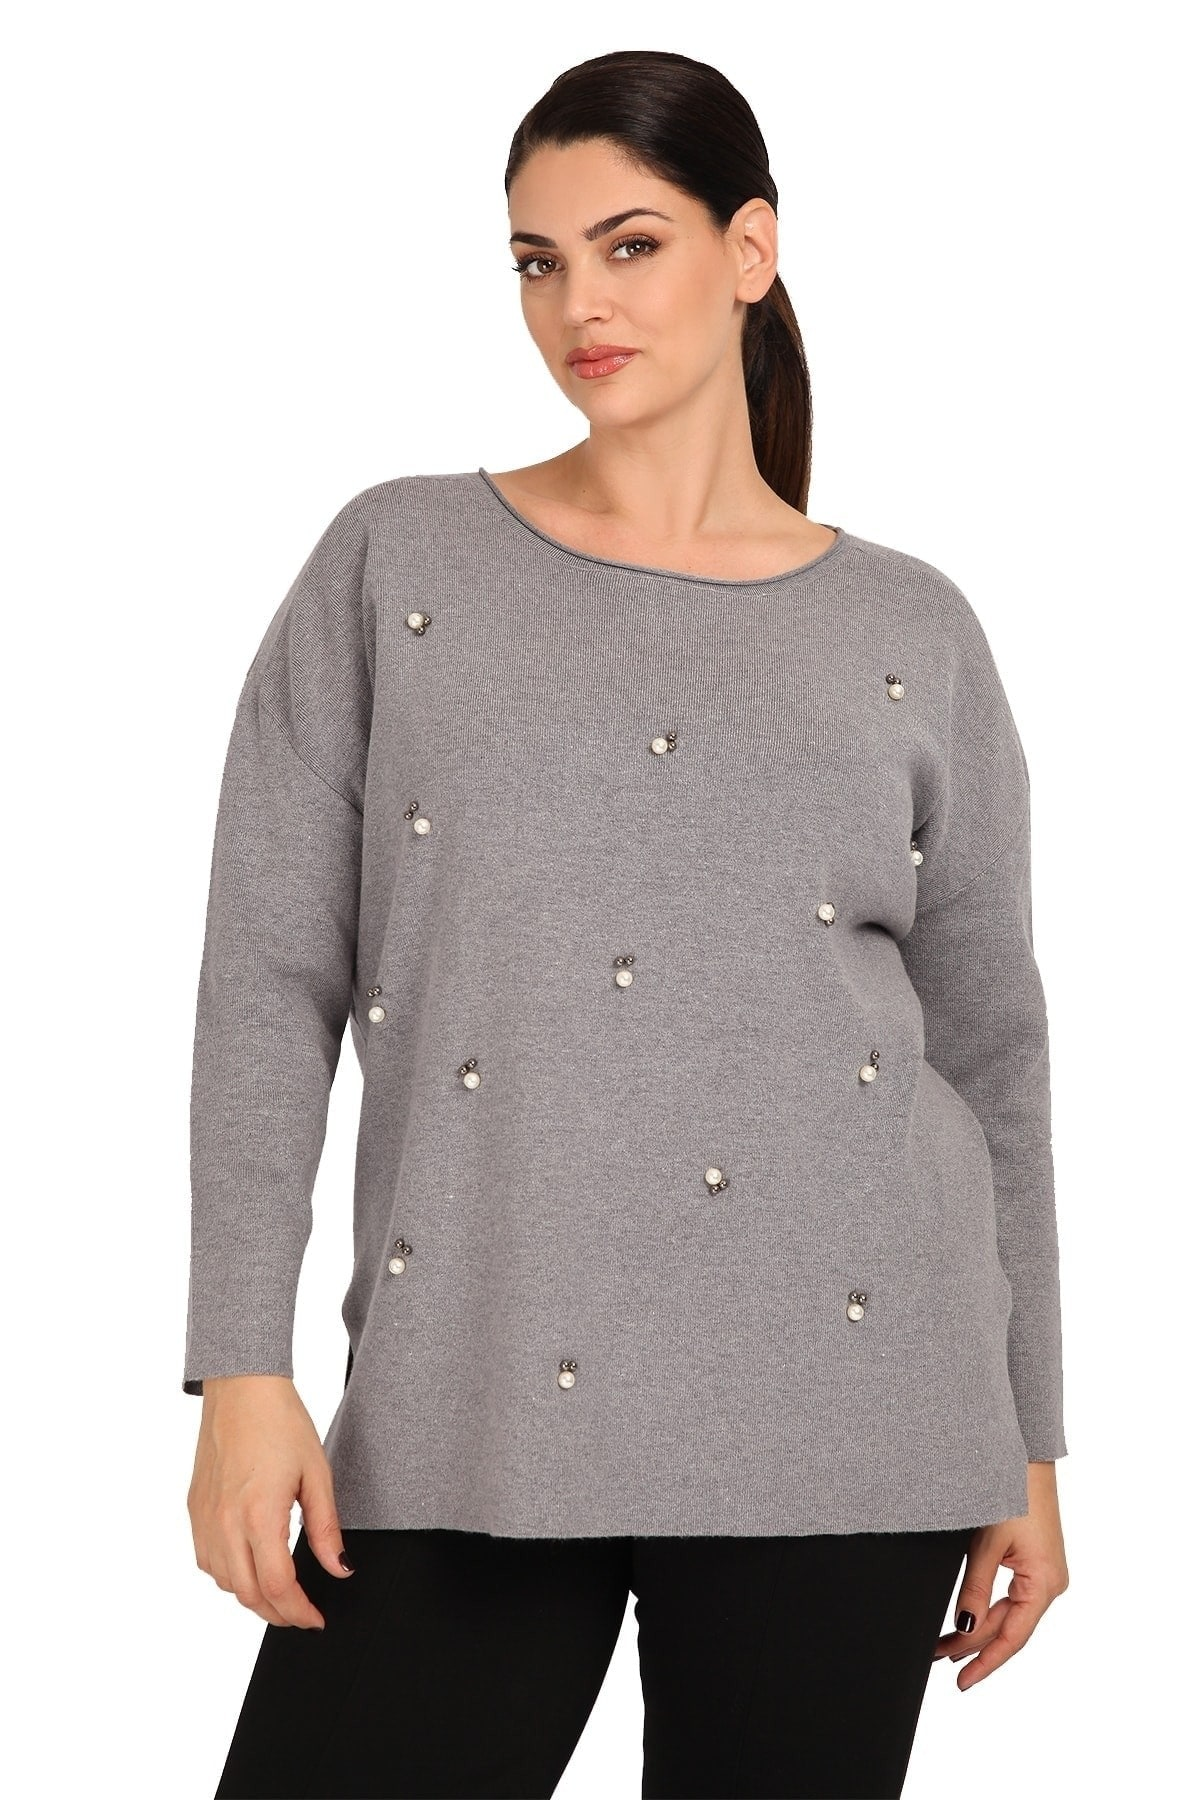 Knit blouse with pearls